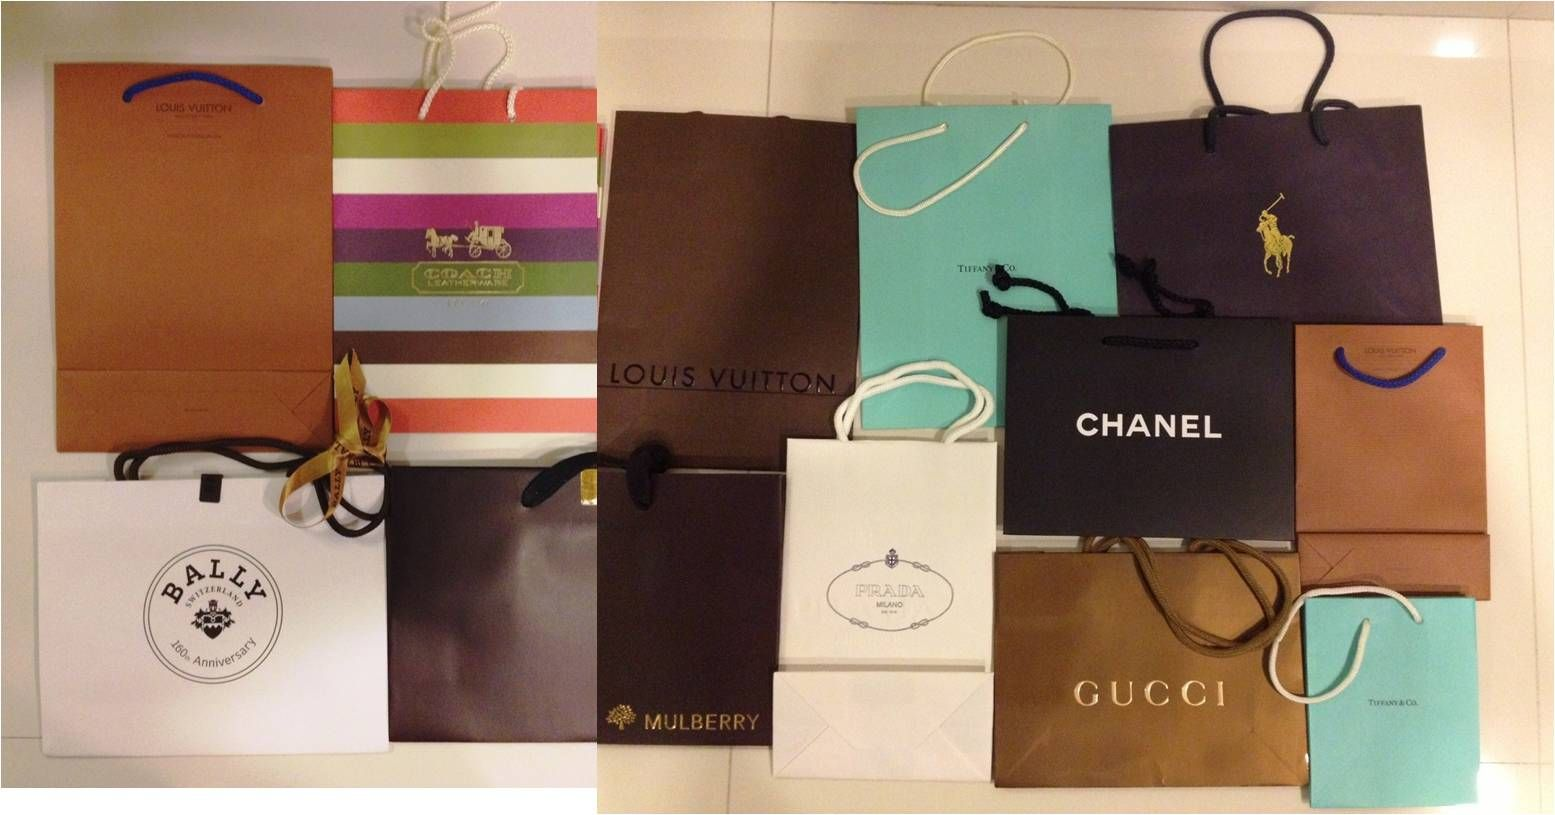 e19f7a646dc7f8 gucci carrier bag - Google Search | ChicSoles | Bags, Shopping bag ...